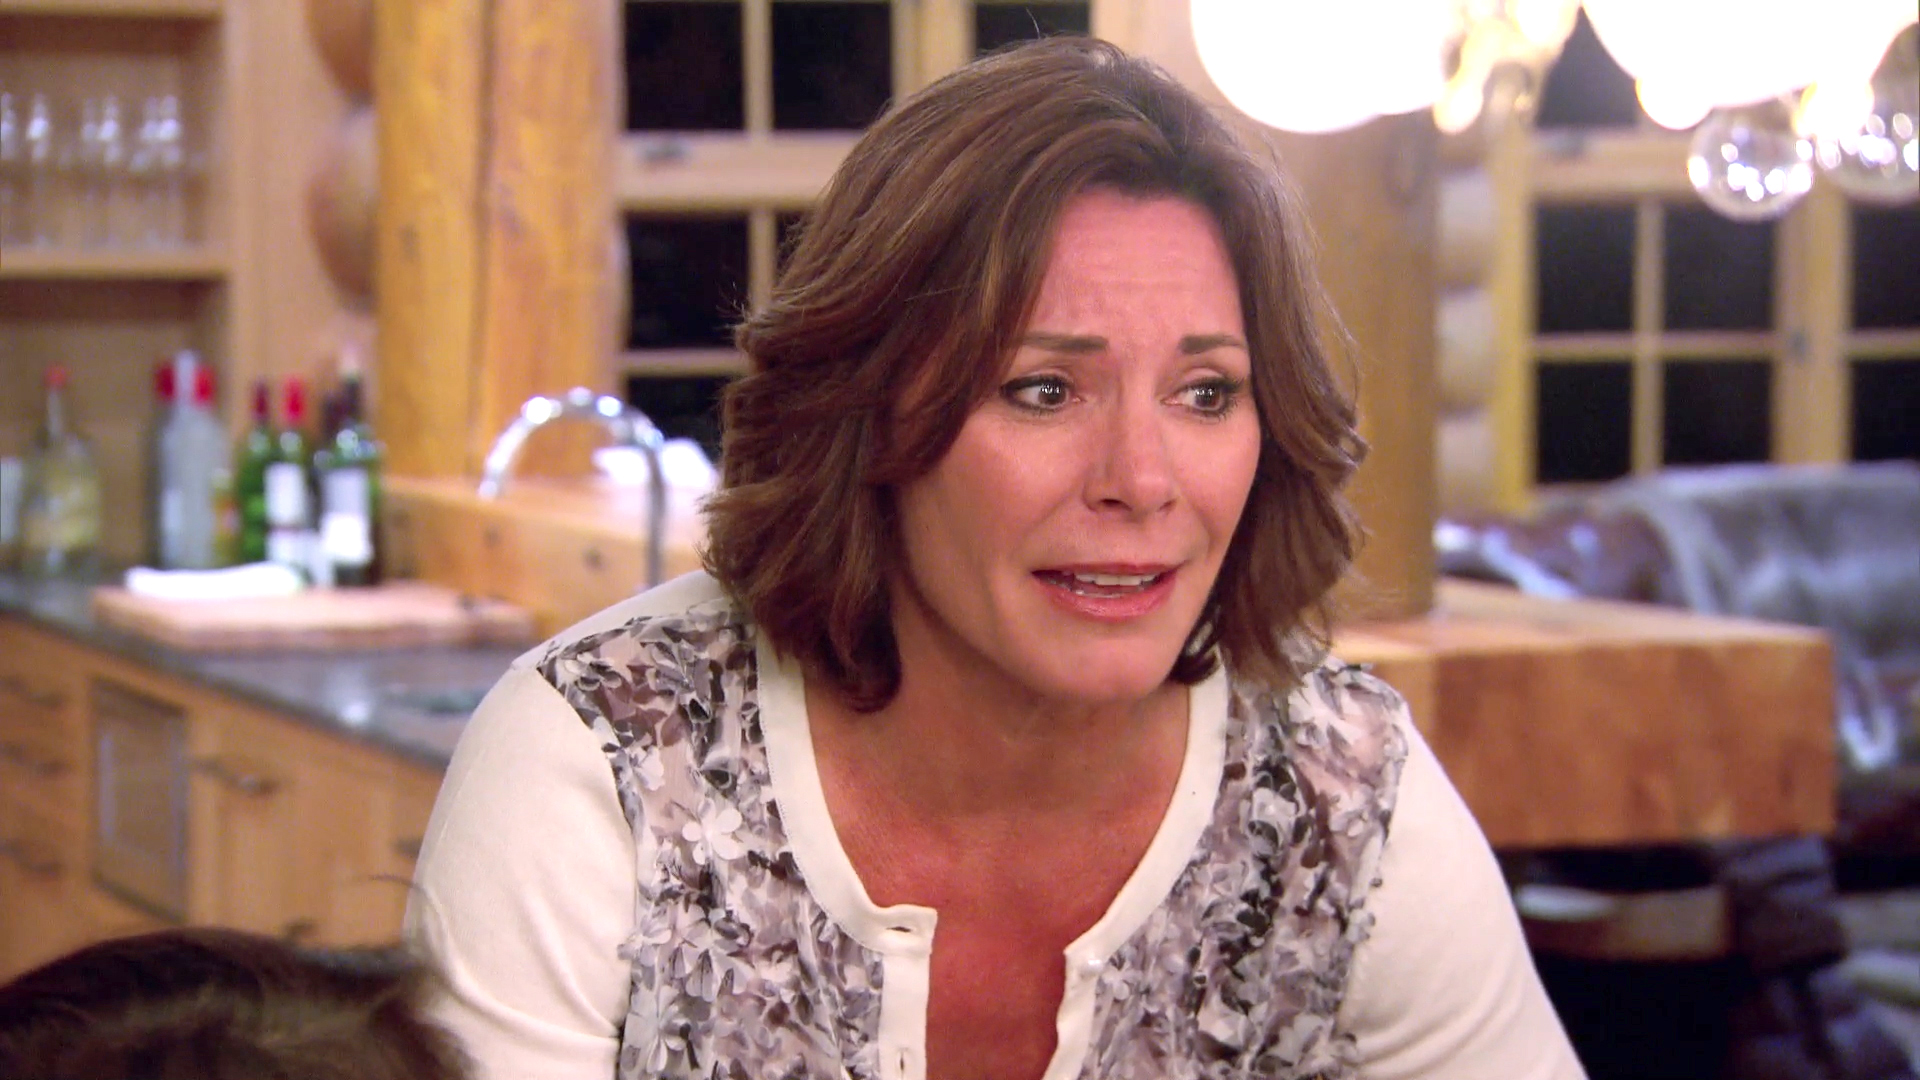 Luann Isn't Happy With the Room Situation